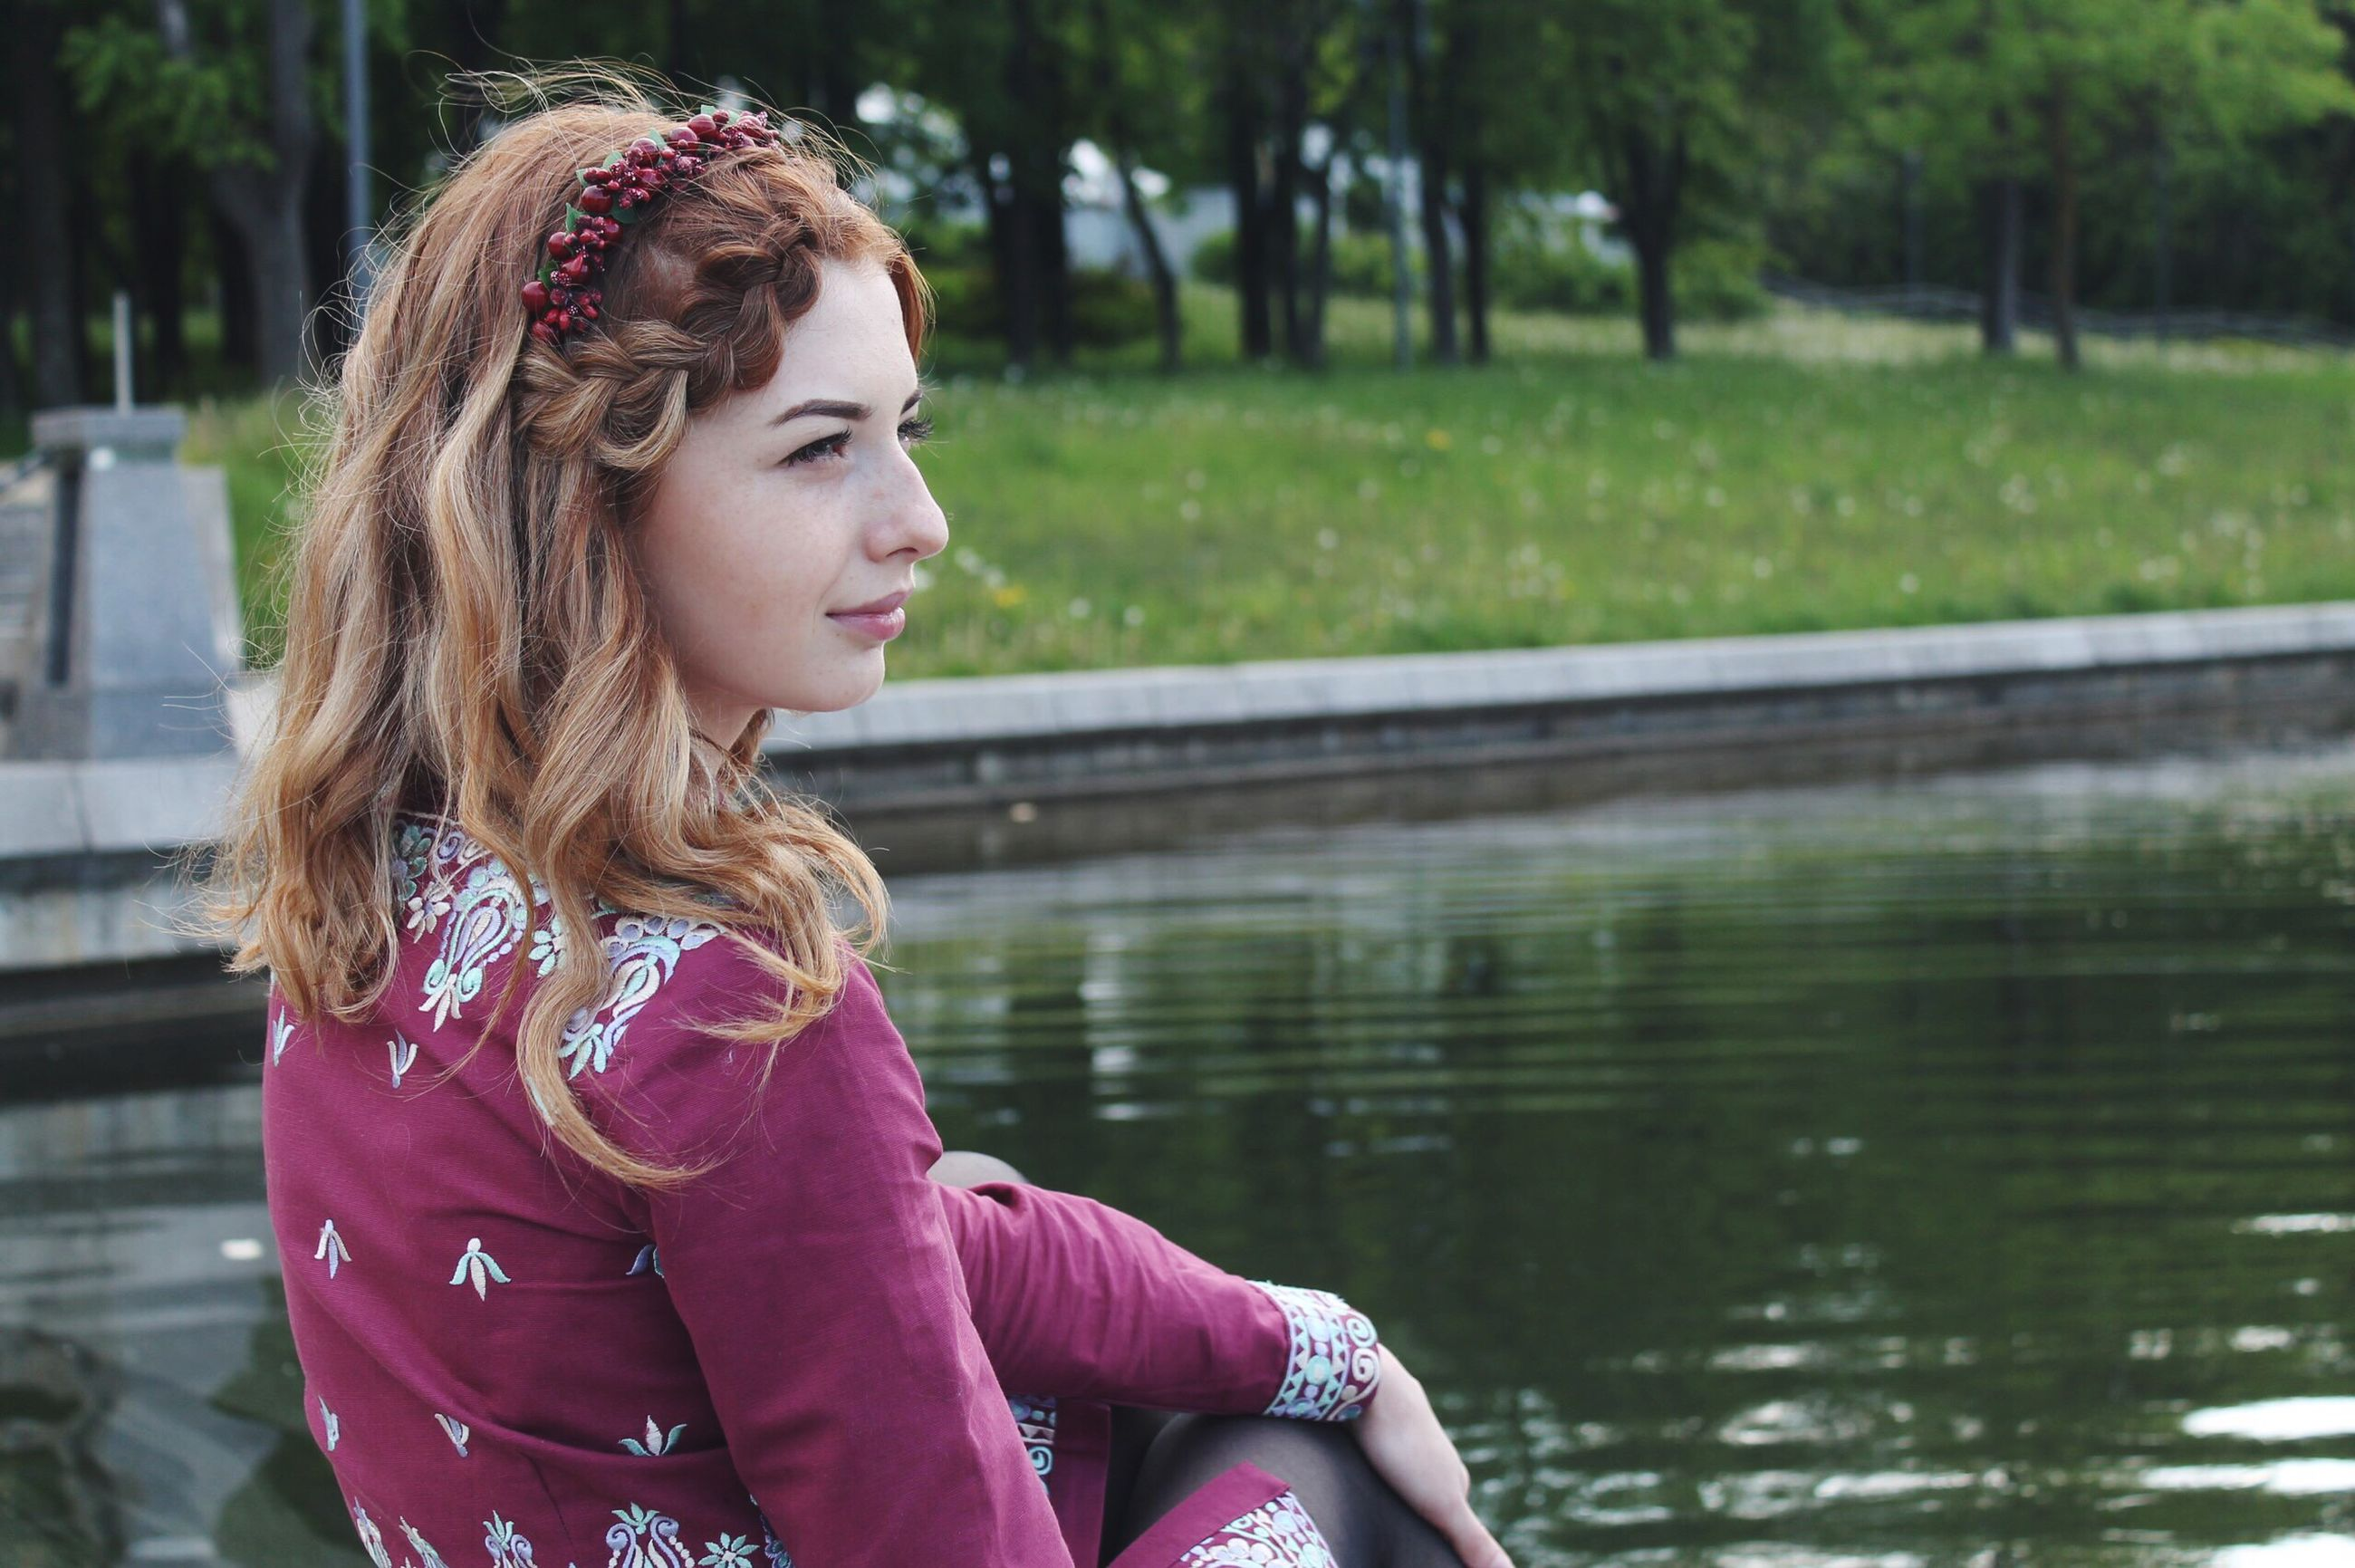 person, lifestyles, focus on foreground, young adult, leisure activity, casual clothing, water, smiling, young women, portrait, looking at camera, blond hair, long hair, happiness, waist up, headshot